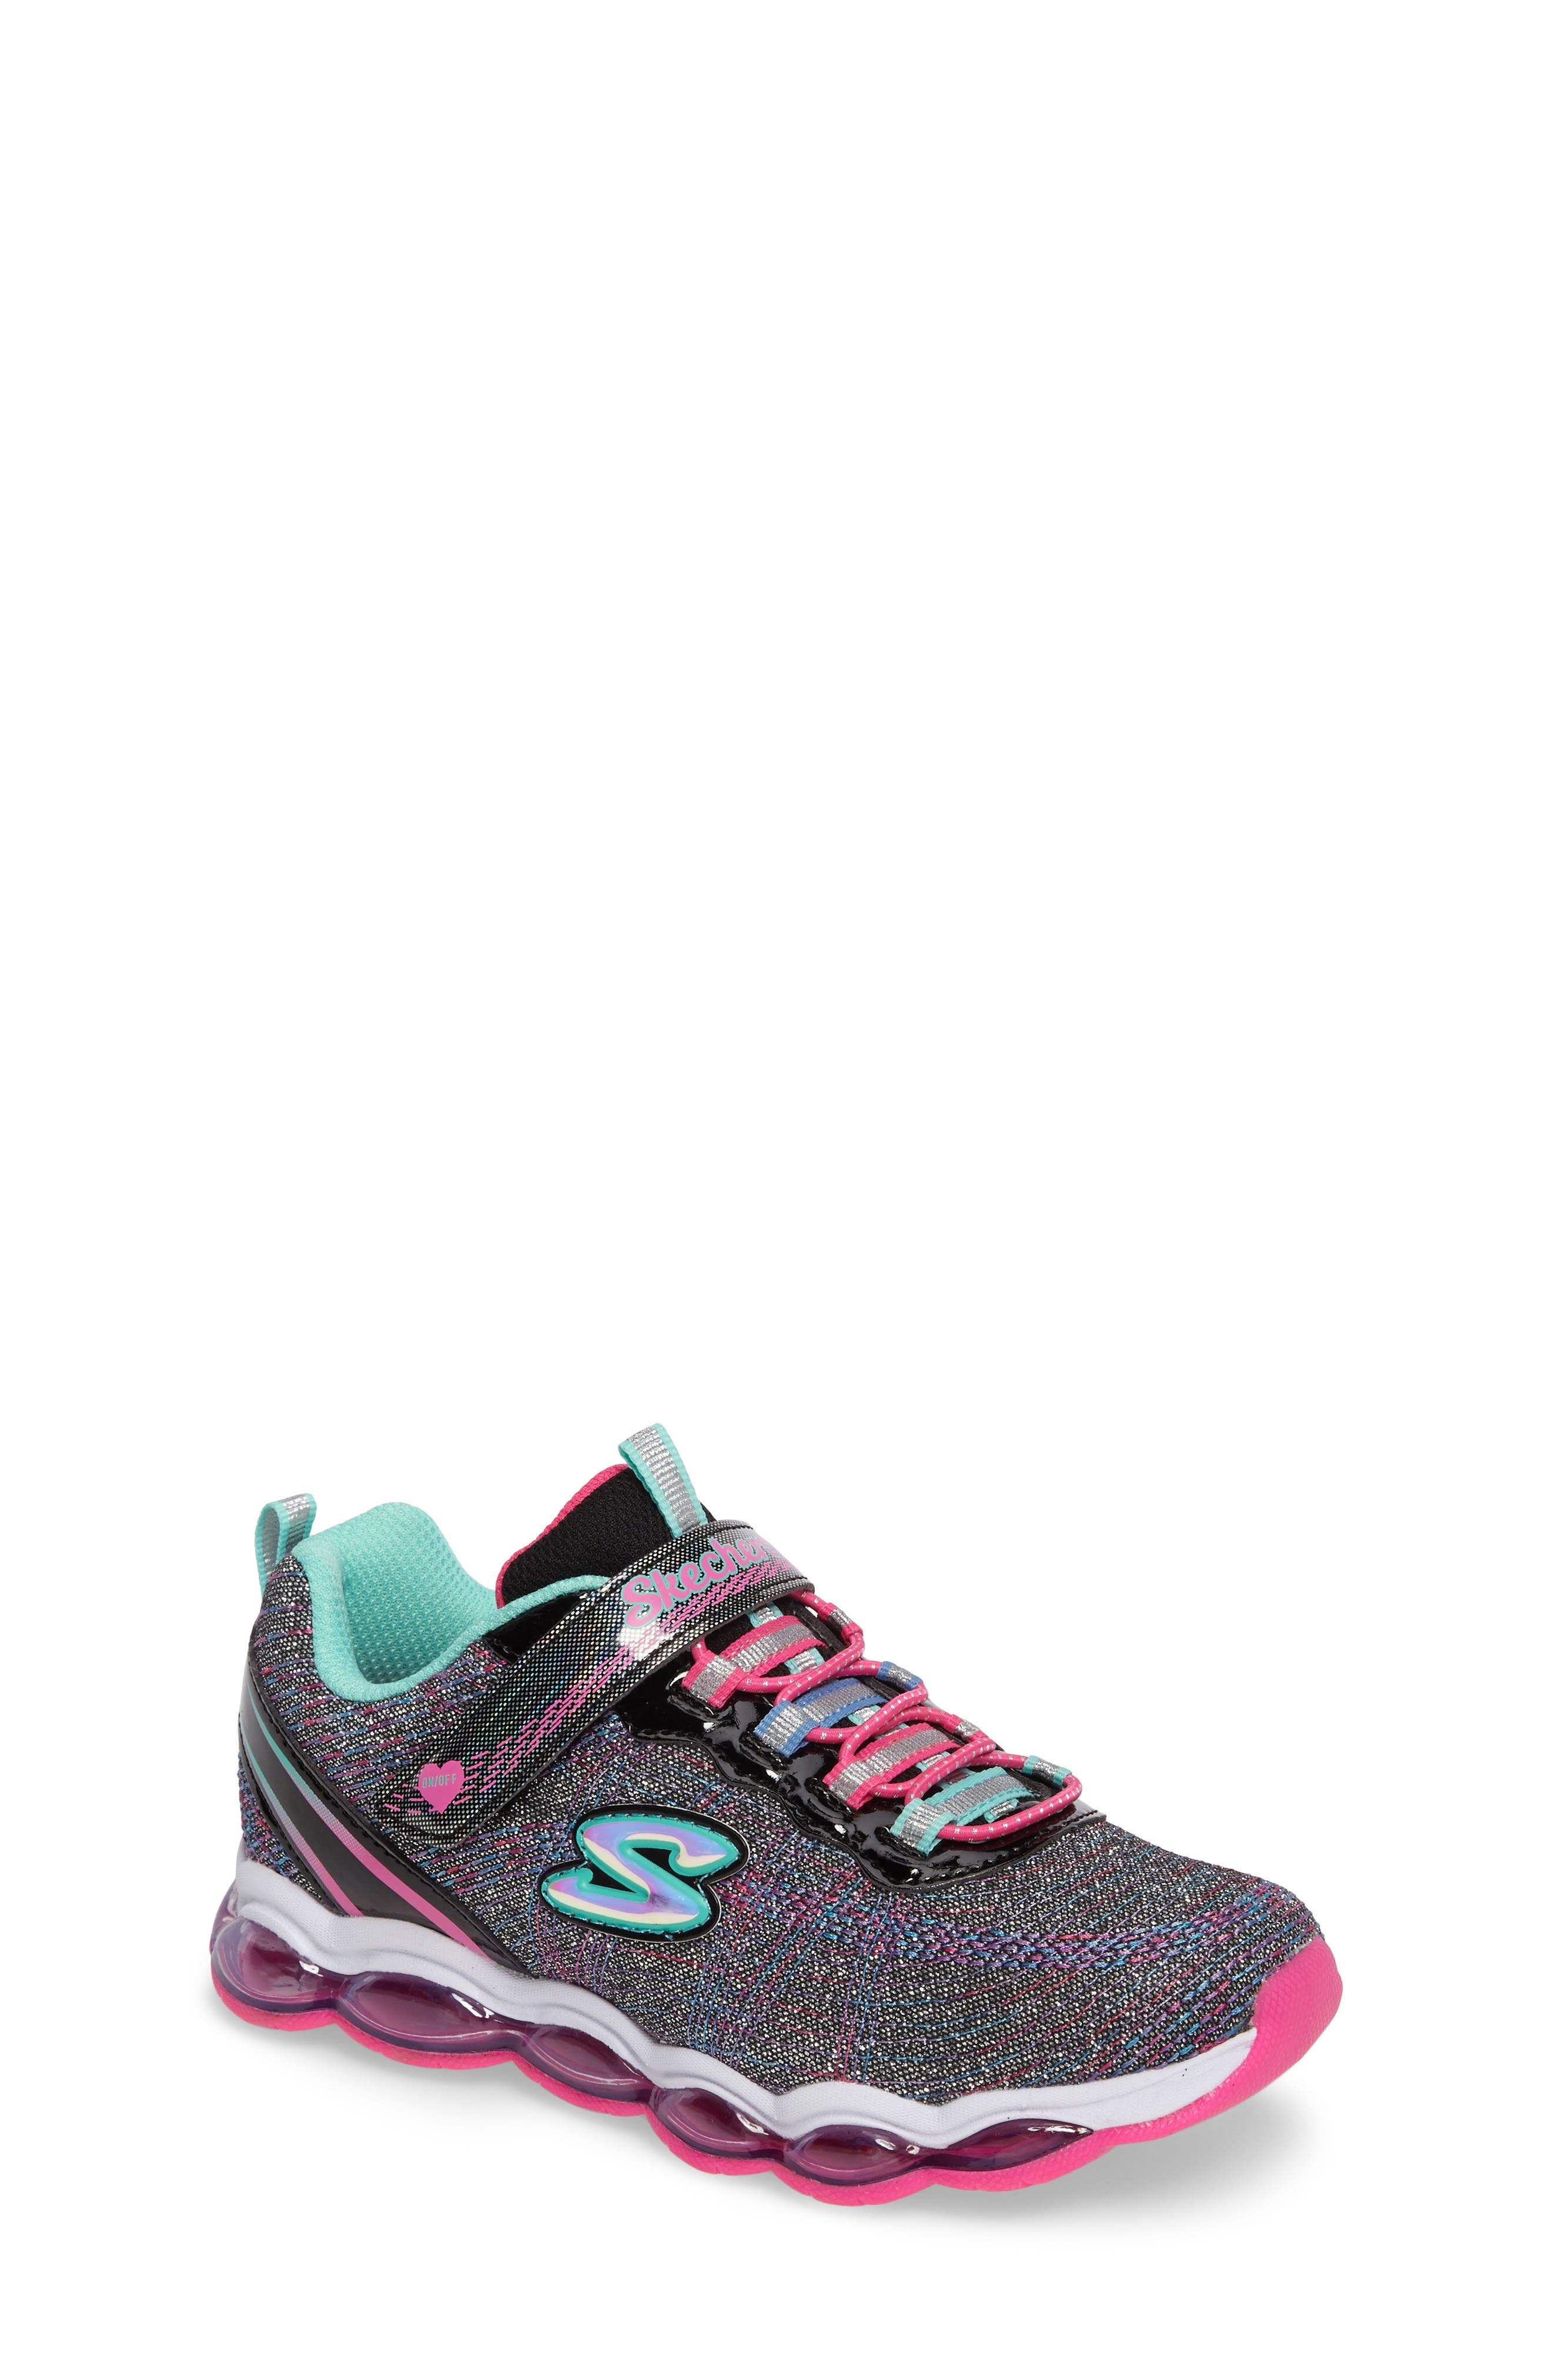 Glimmer Lights Sneakers,                         Main,                         color, 001